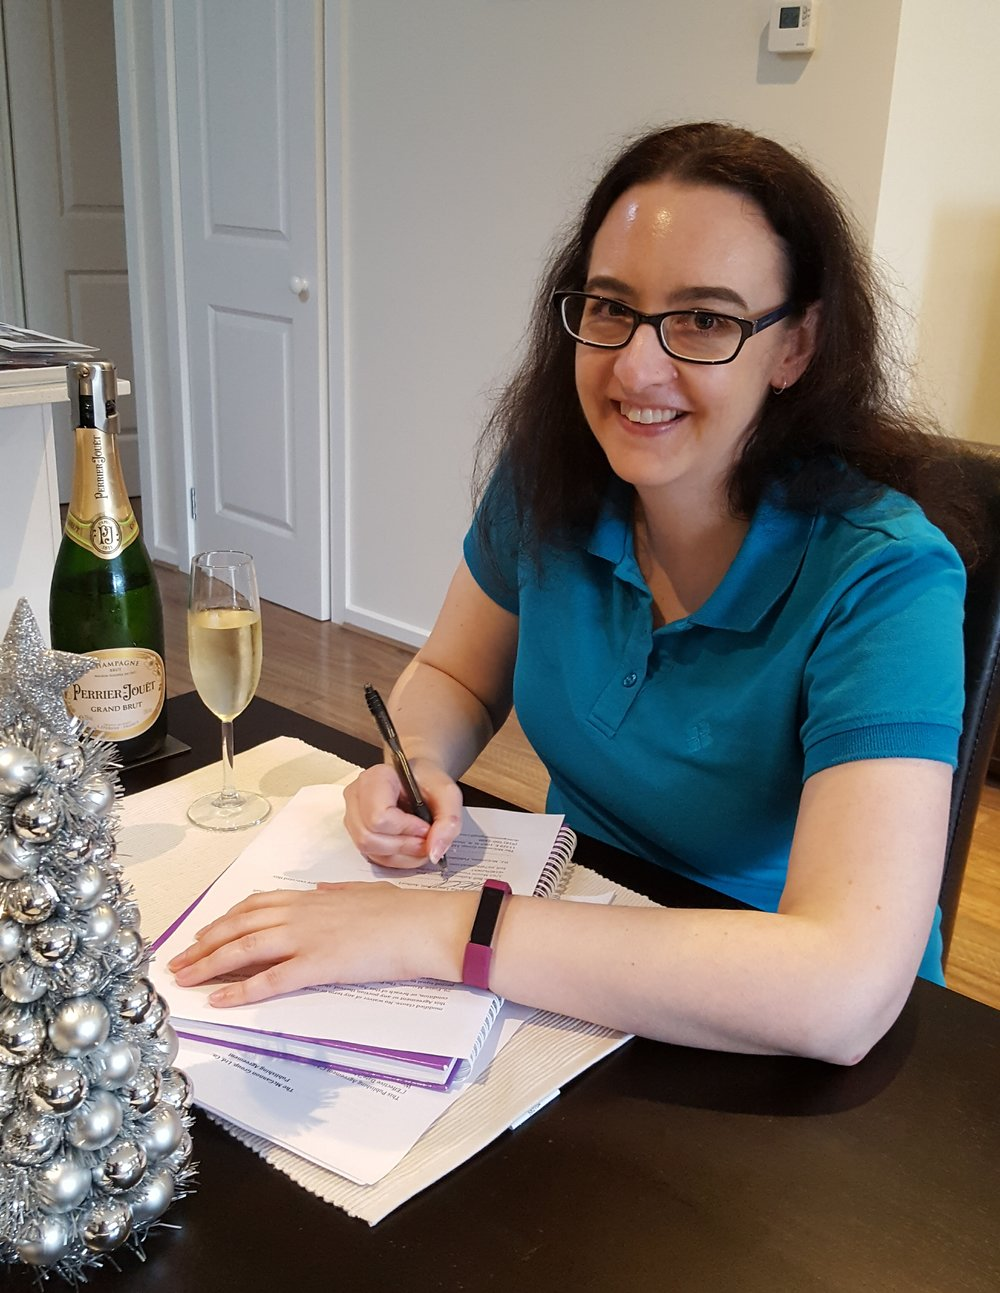 Laurie Bell signing her first book contract with Wyvern's Peak Publishing